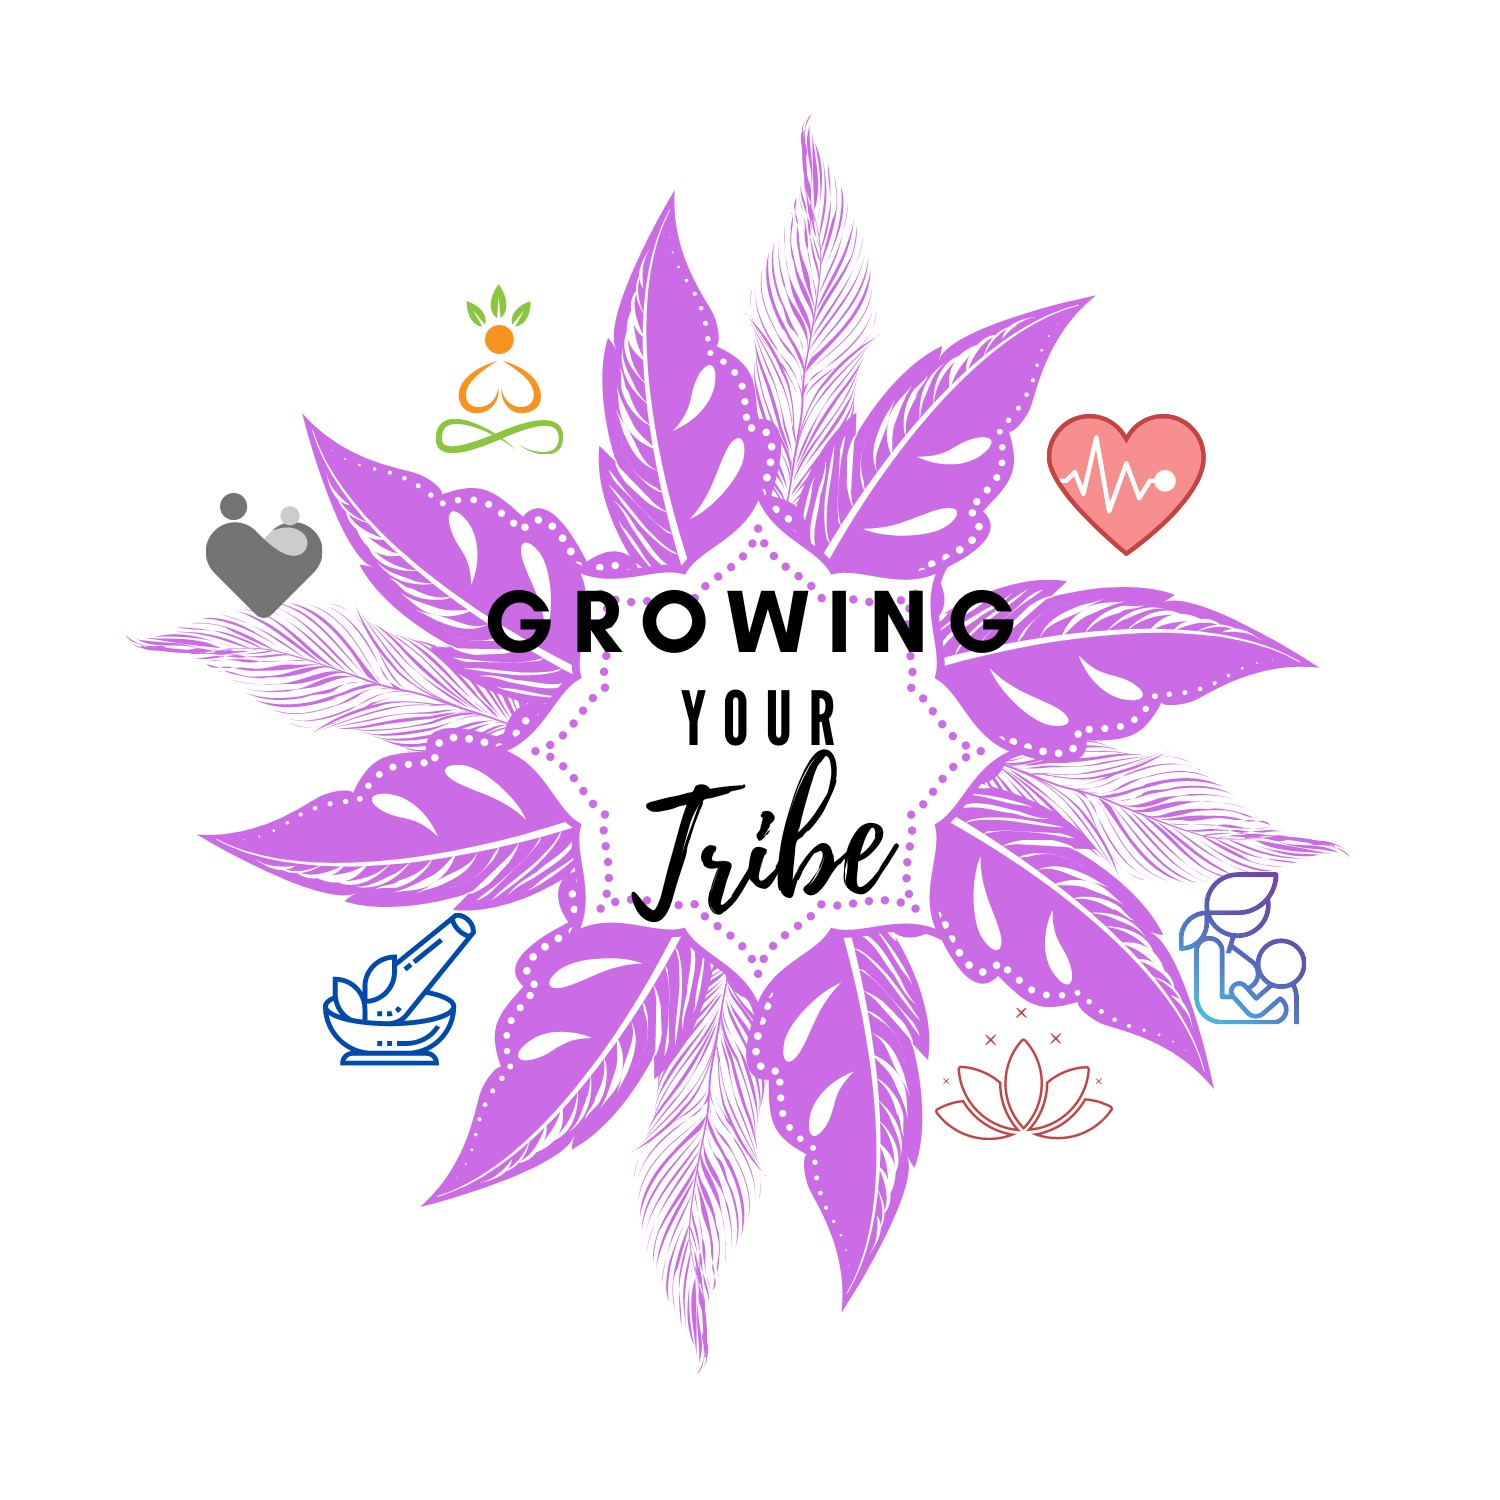 Growing Your Tribe